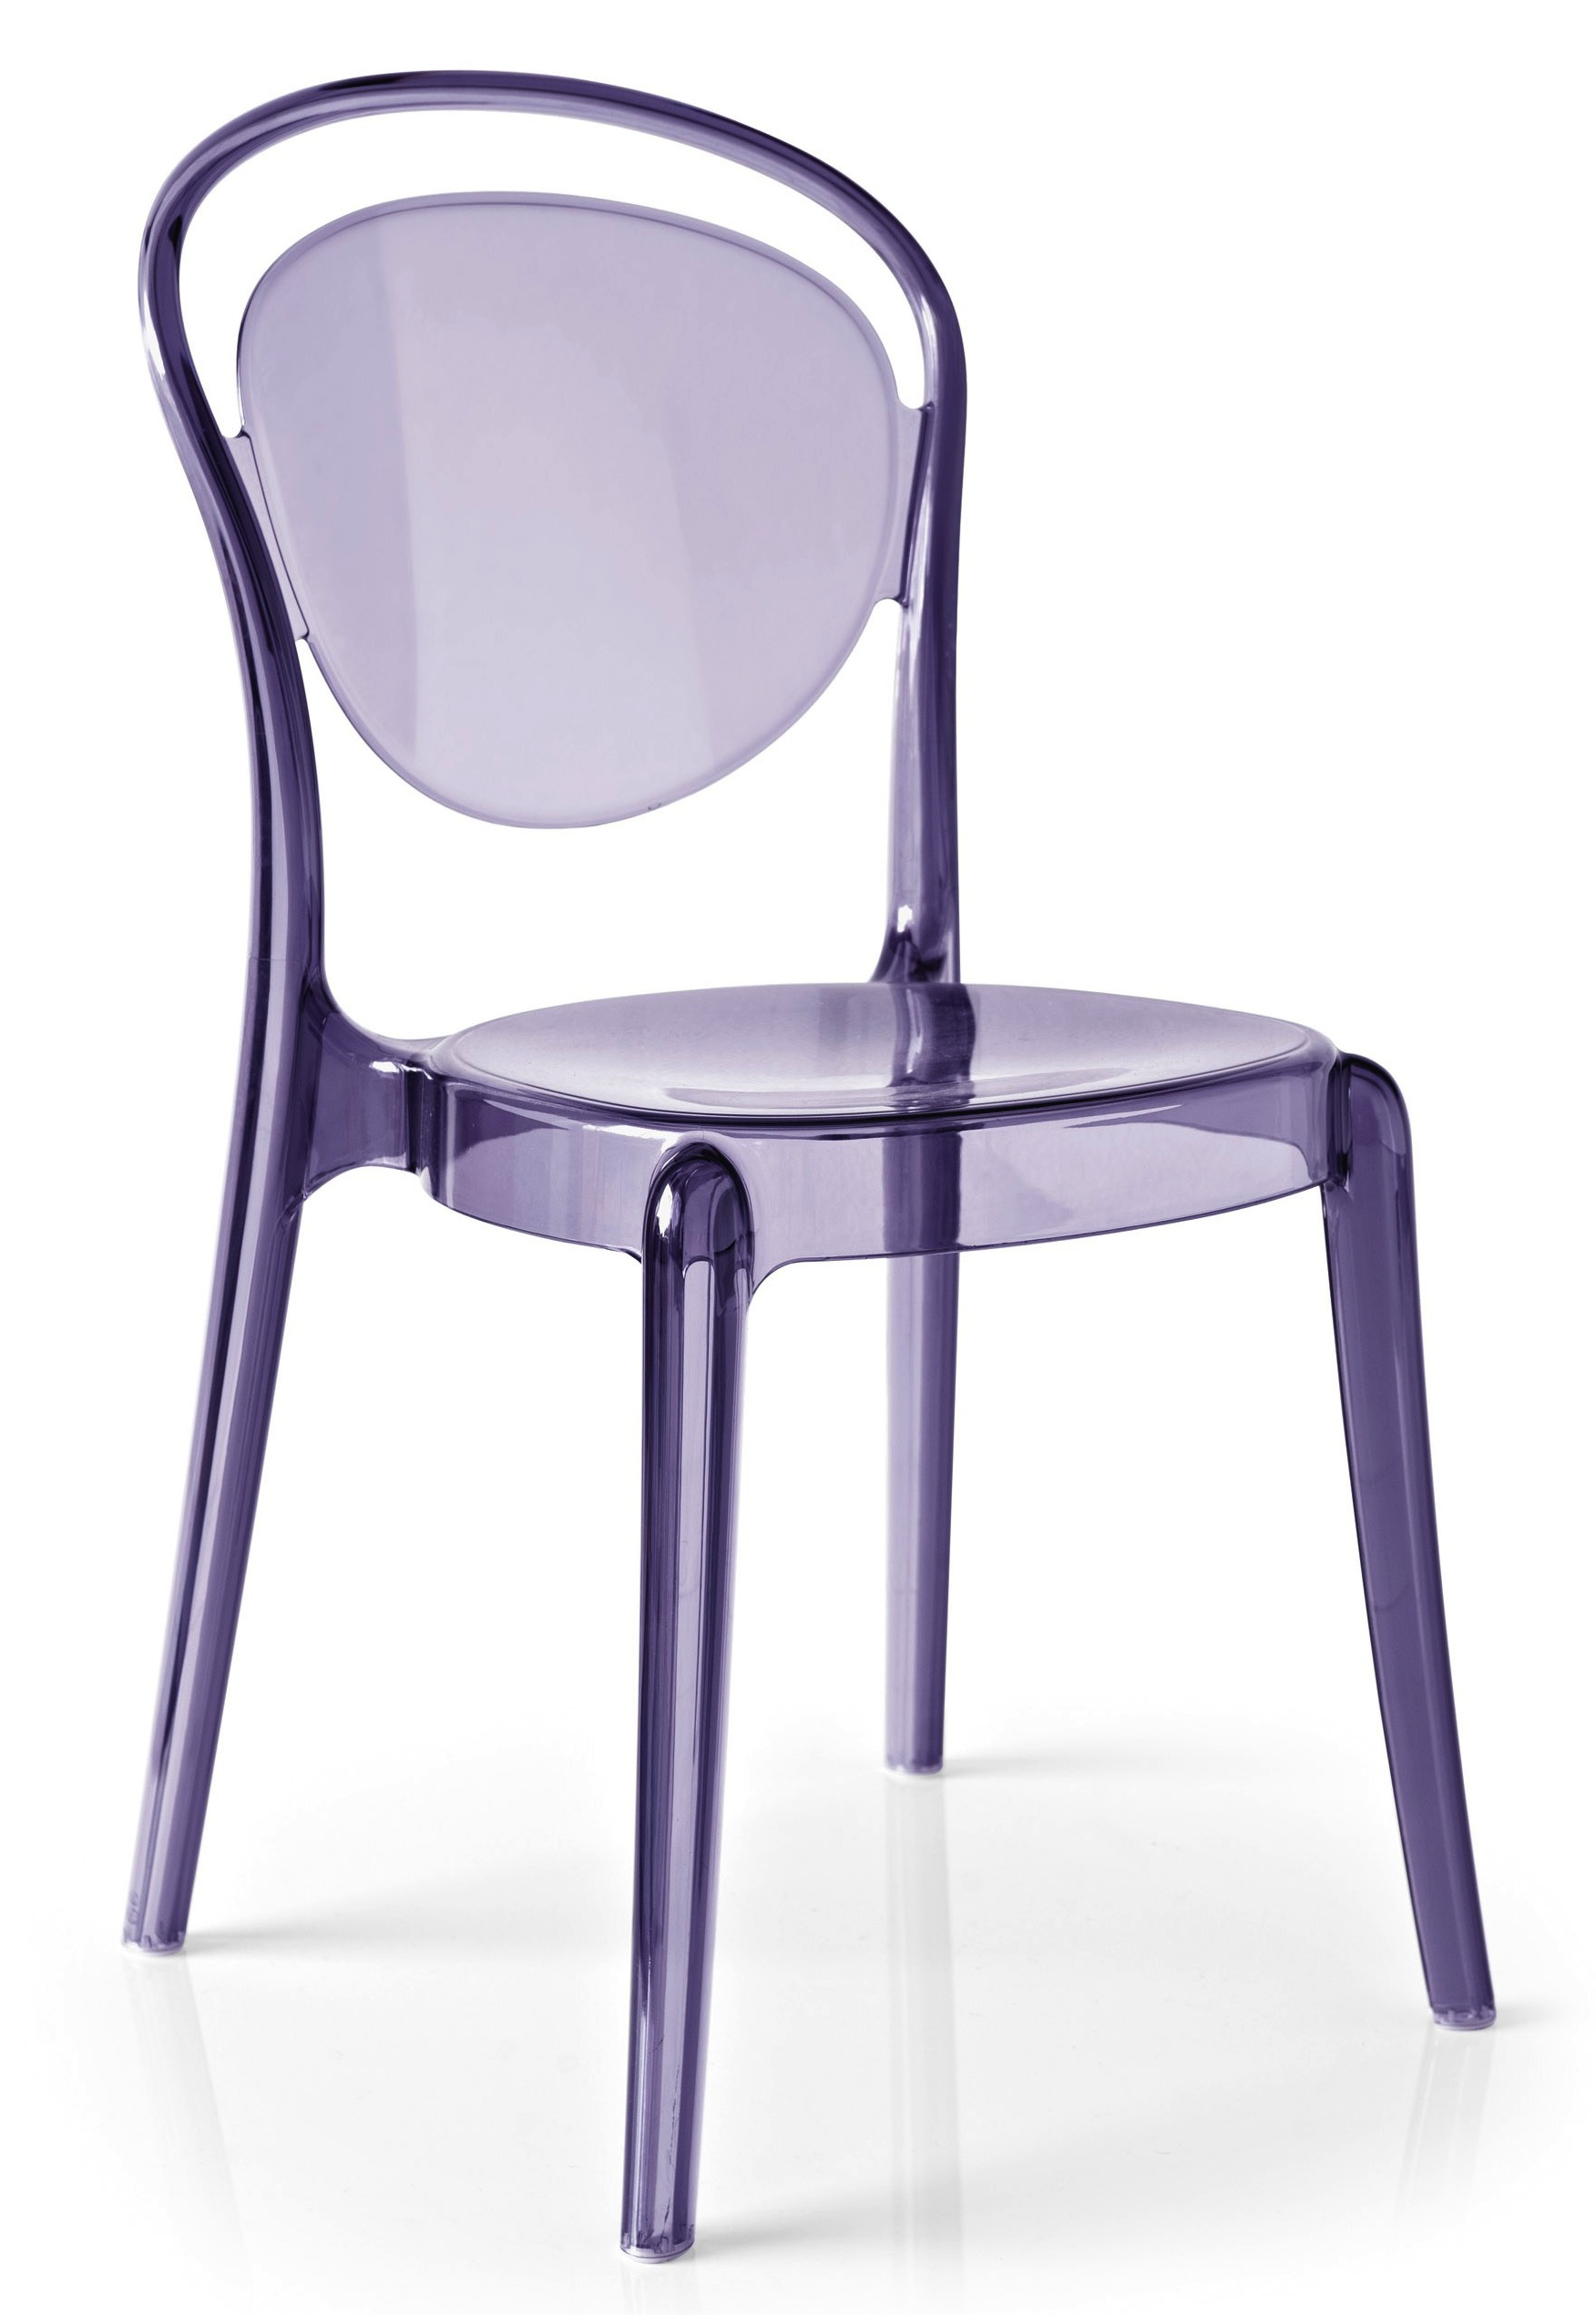 parisienne-chair-in-purple.jpg